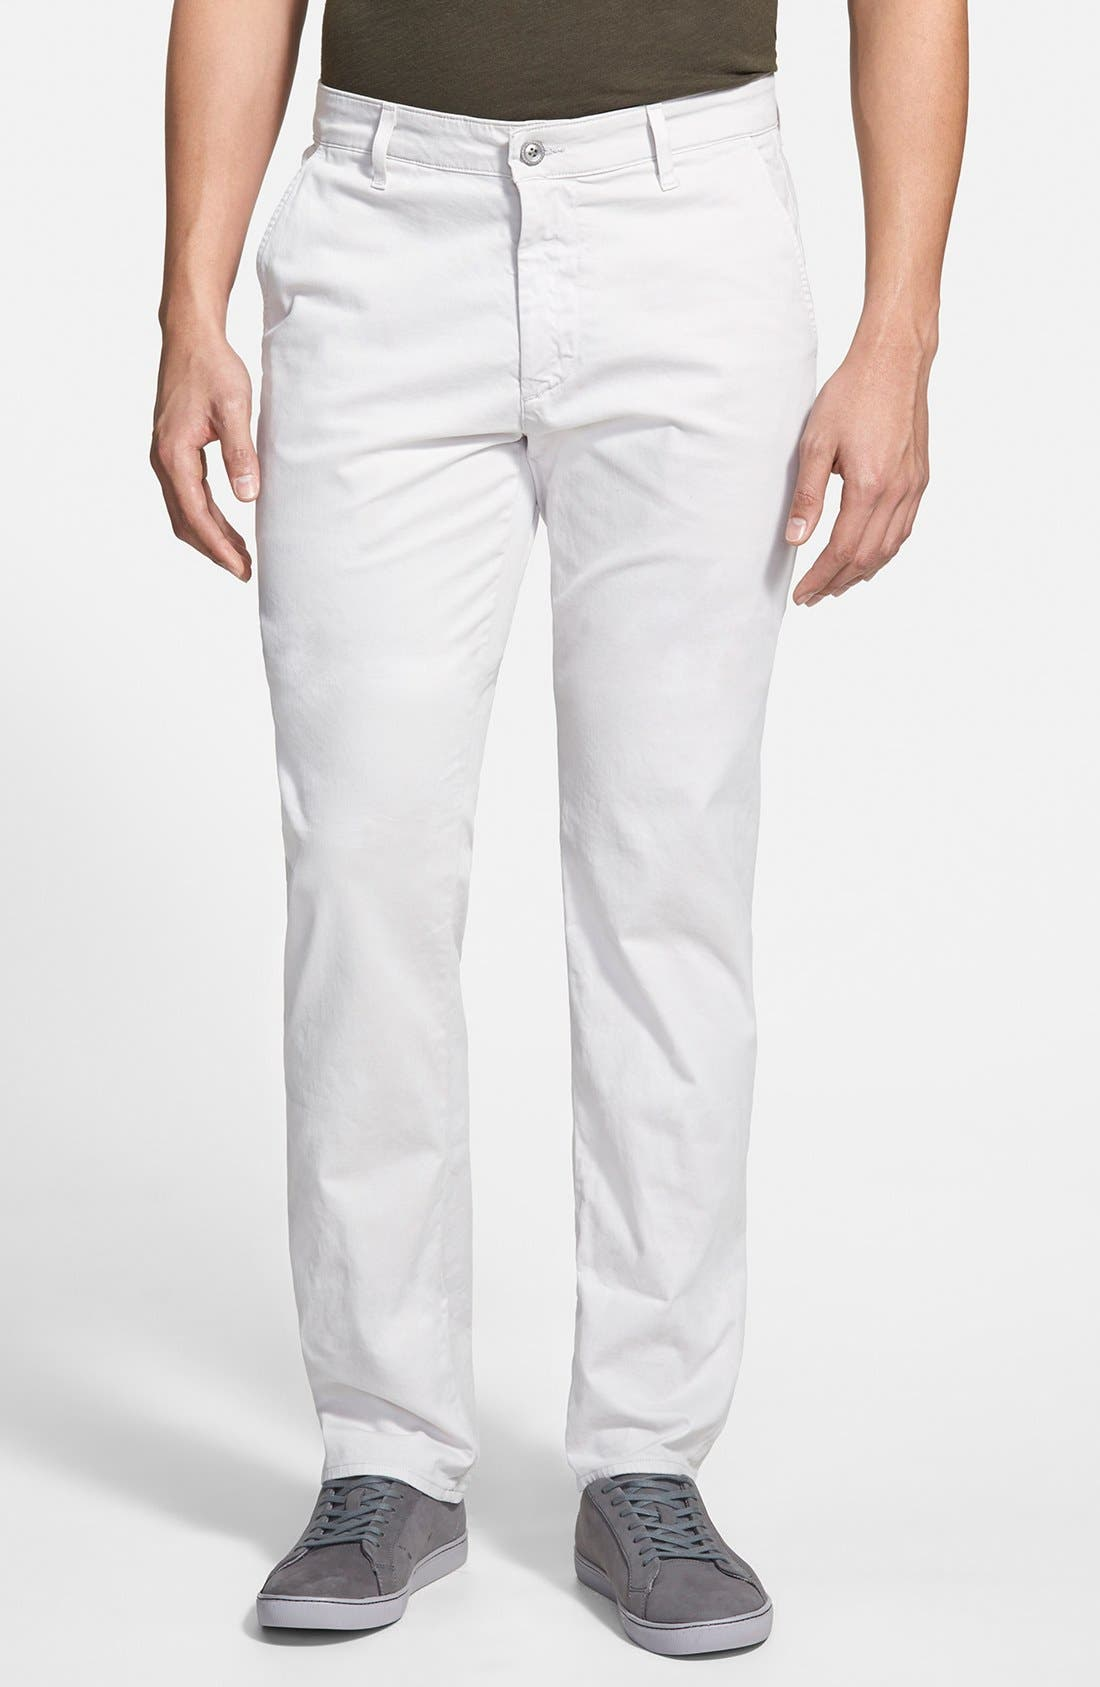 'The Lux' Tailored Straight Leg Chinos,                             Main thumbnail 1, color,                             060